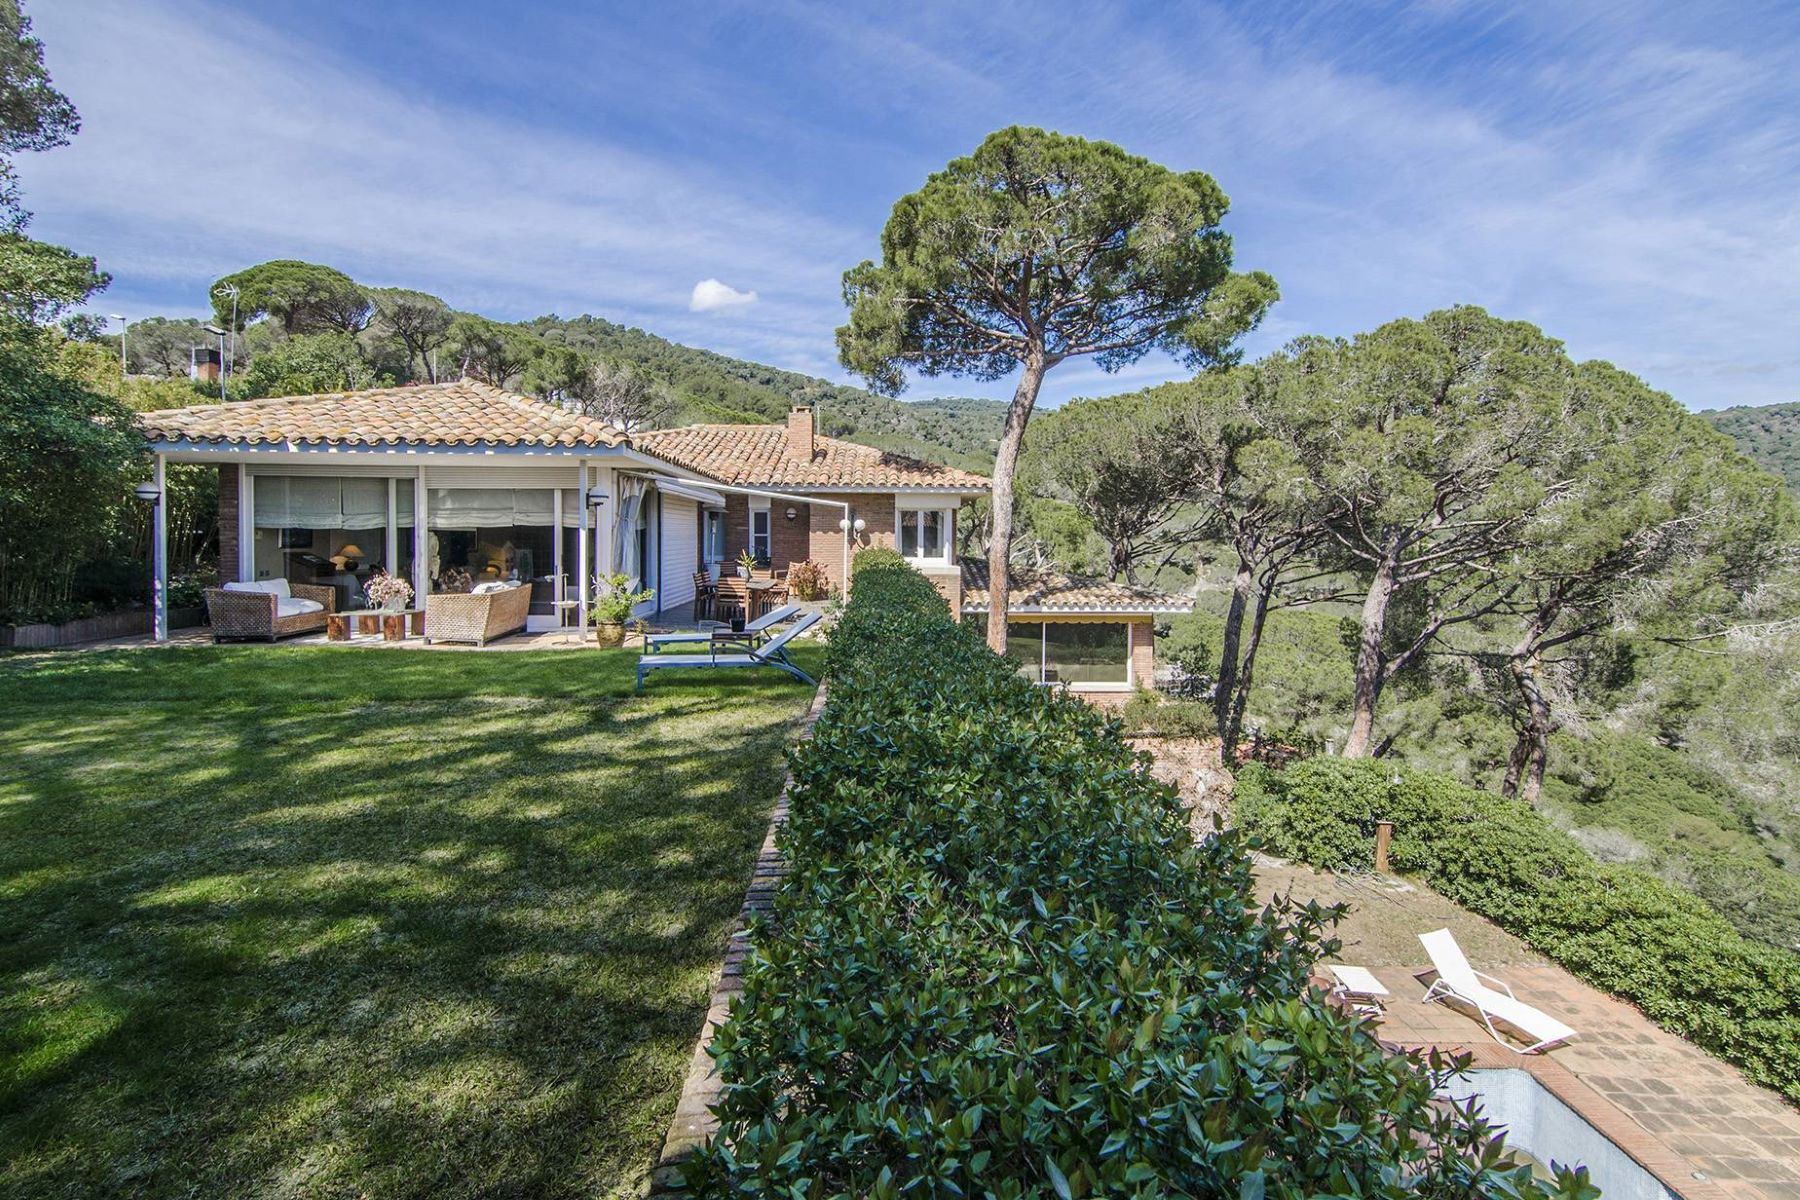 Single Family Home for Sale at Tranquility and Sea Views in the Coastal Sierra Vilassar De Mar, Barcelona, 08340 Spain